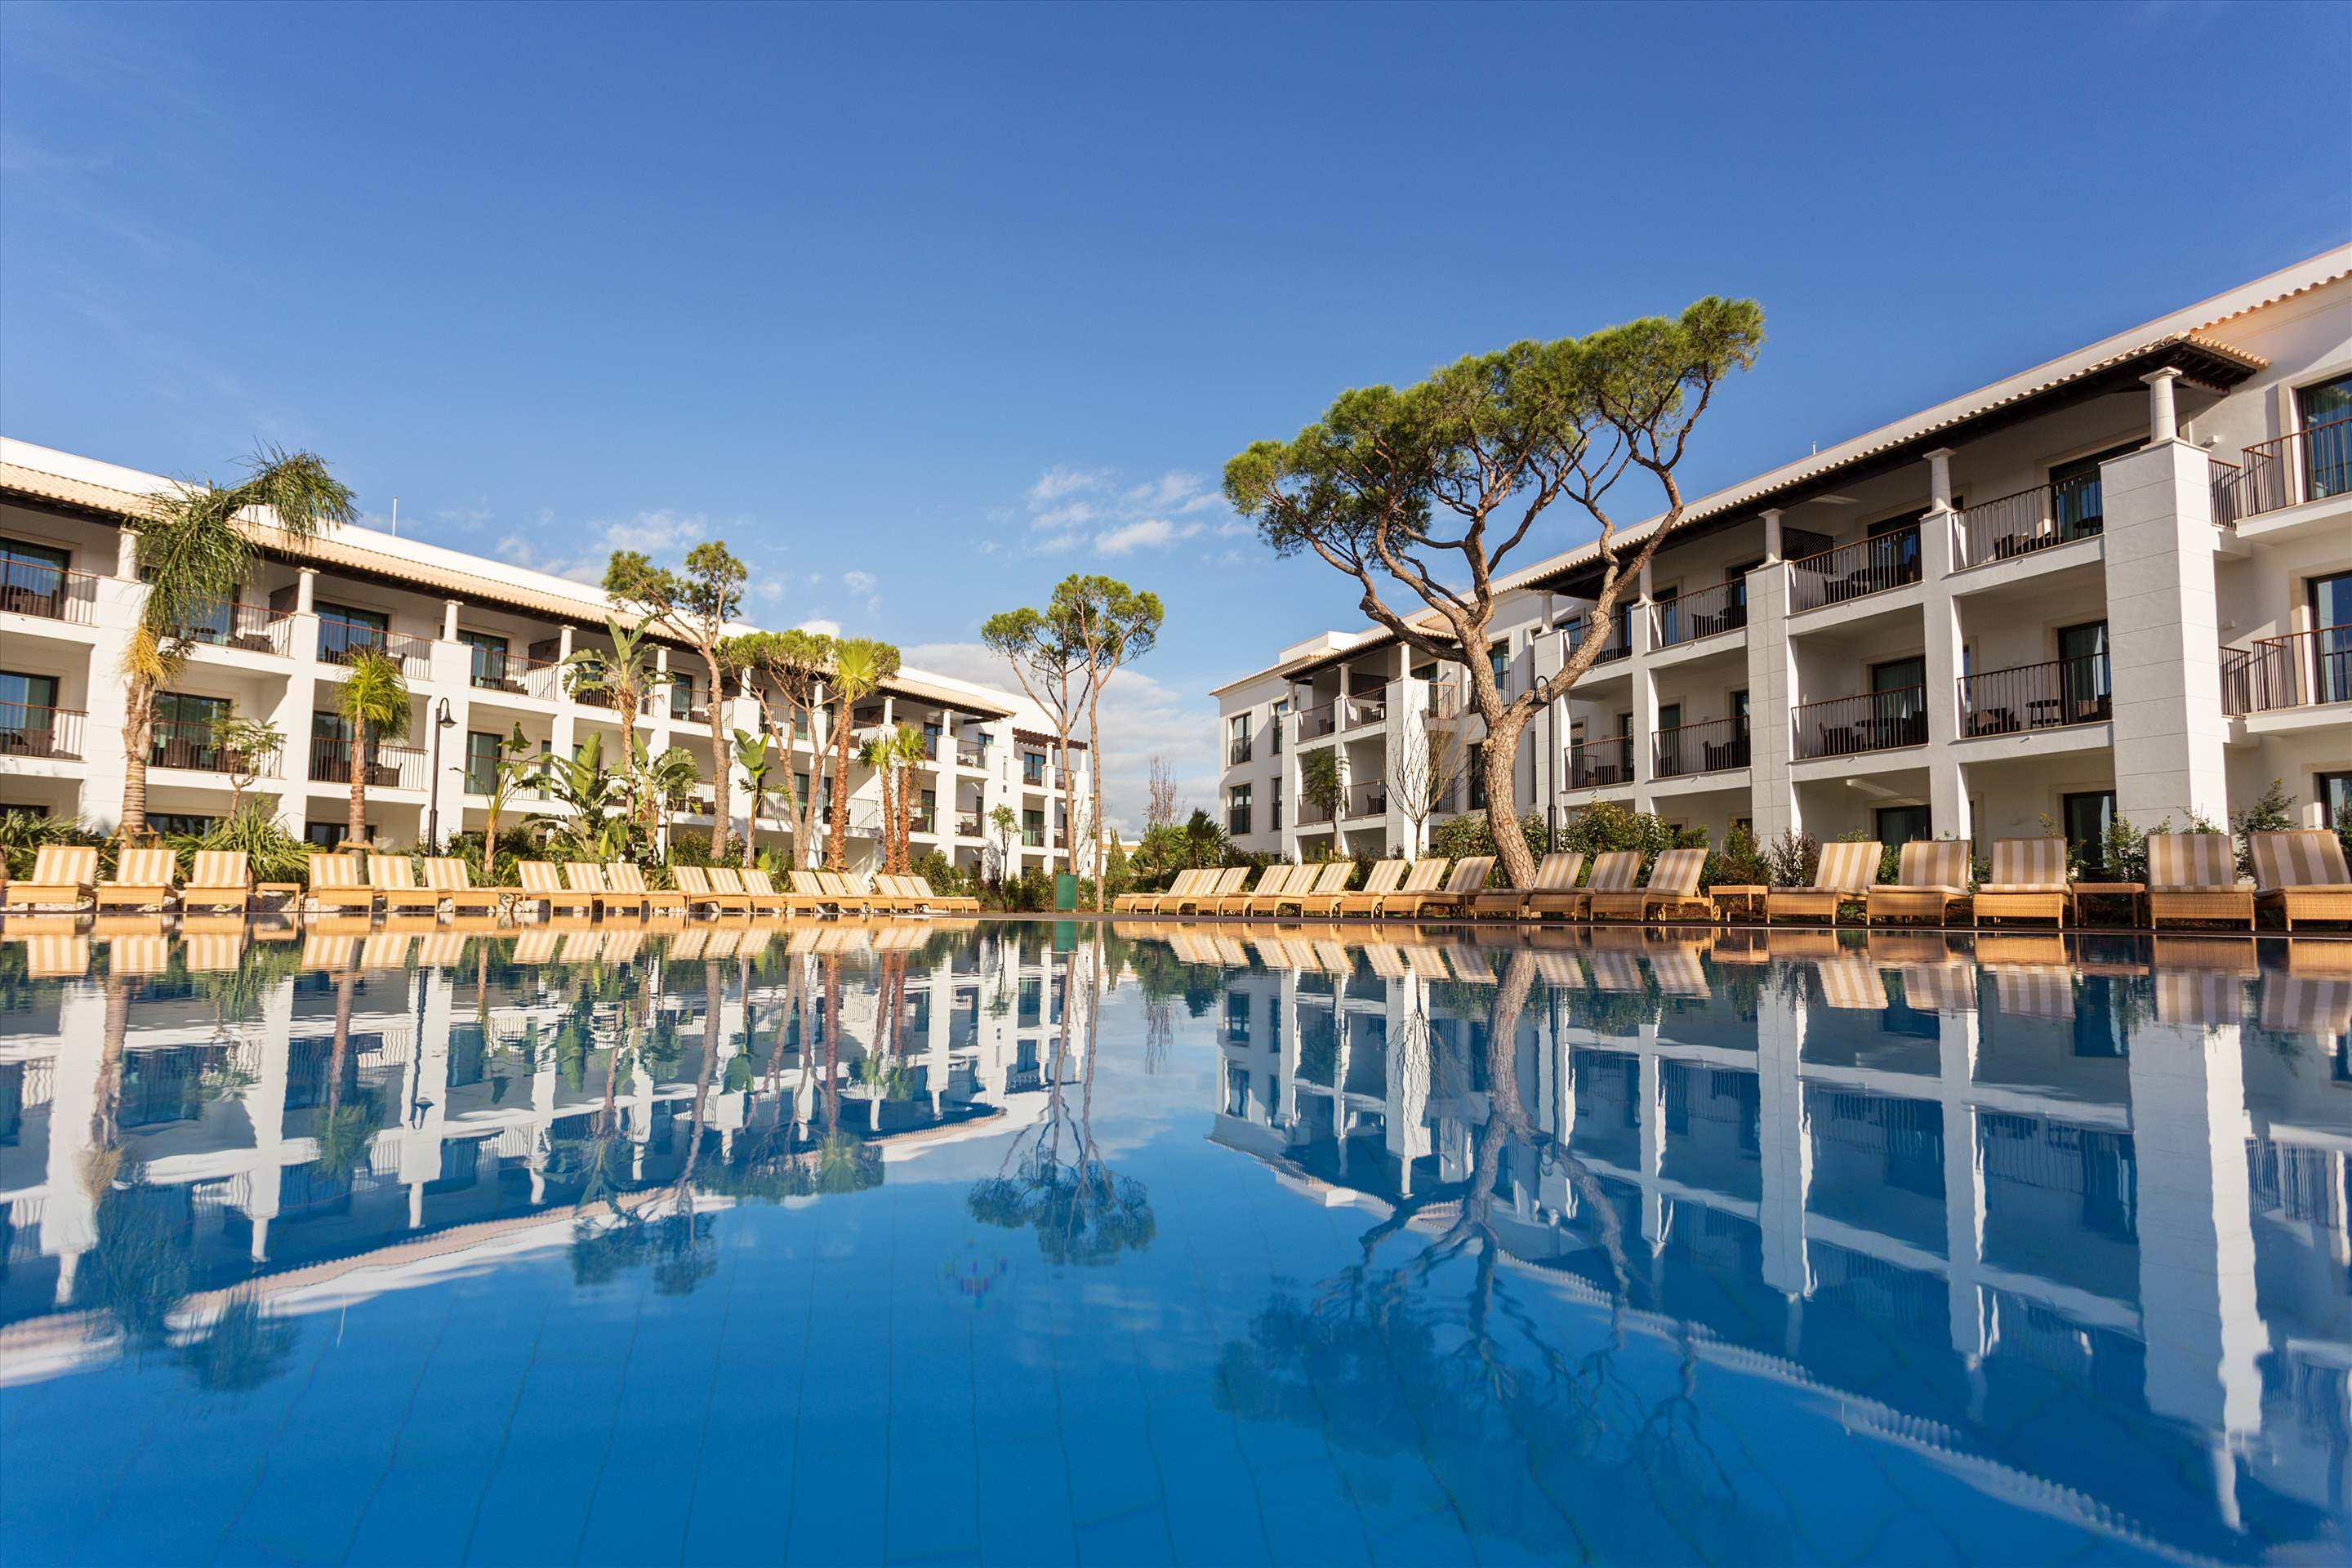 Pine Cliffs Gardens, Two Bedroom Suite, S/C Basis, 2 bedroom apartment in Pine Cliffs Resort, Algarve Photo #8